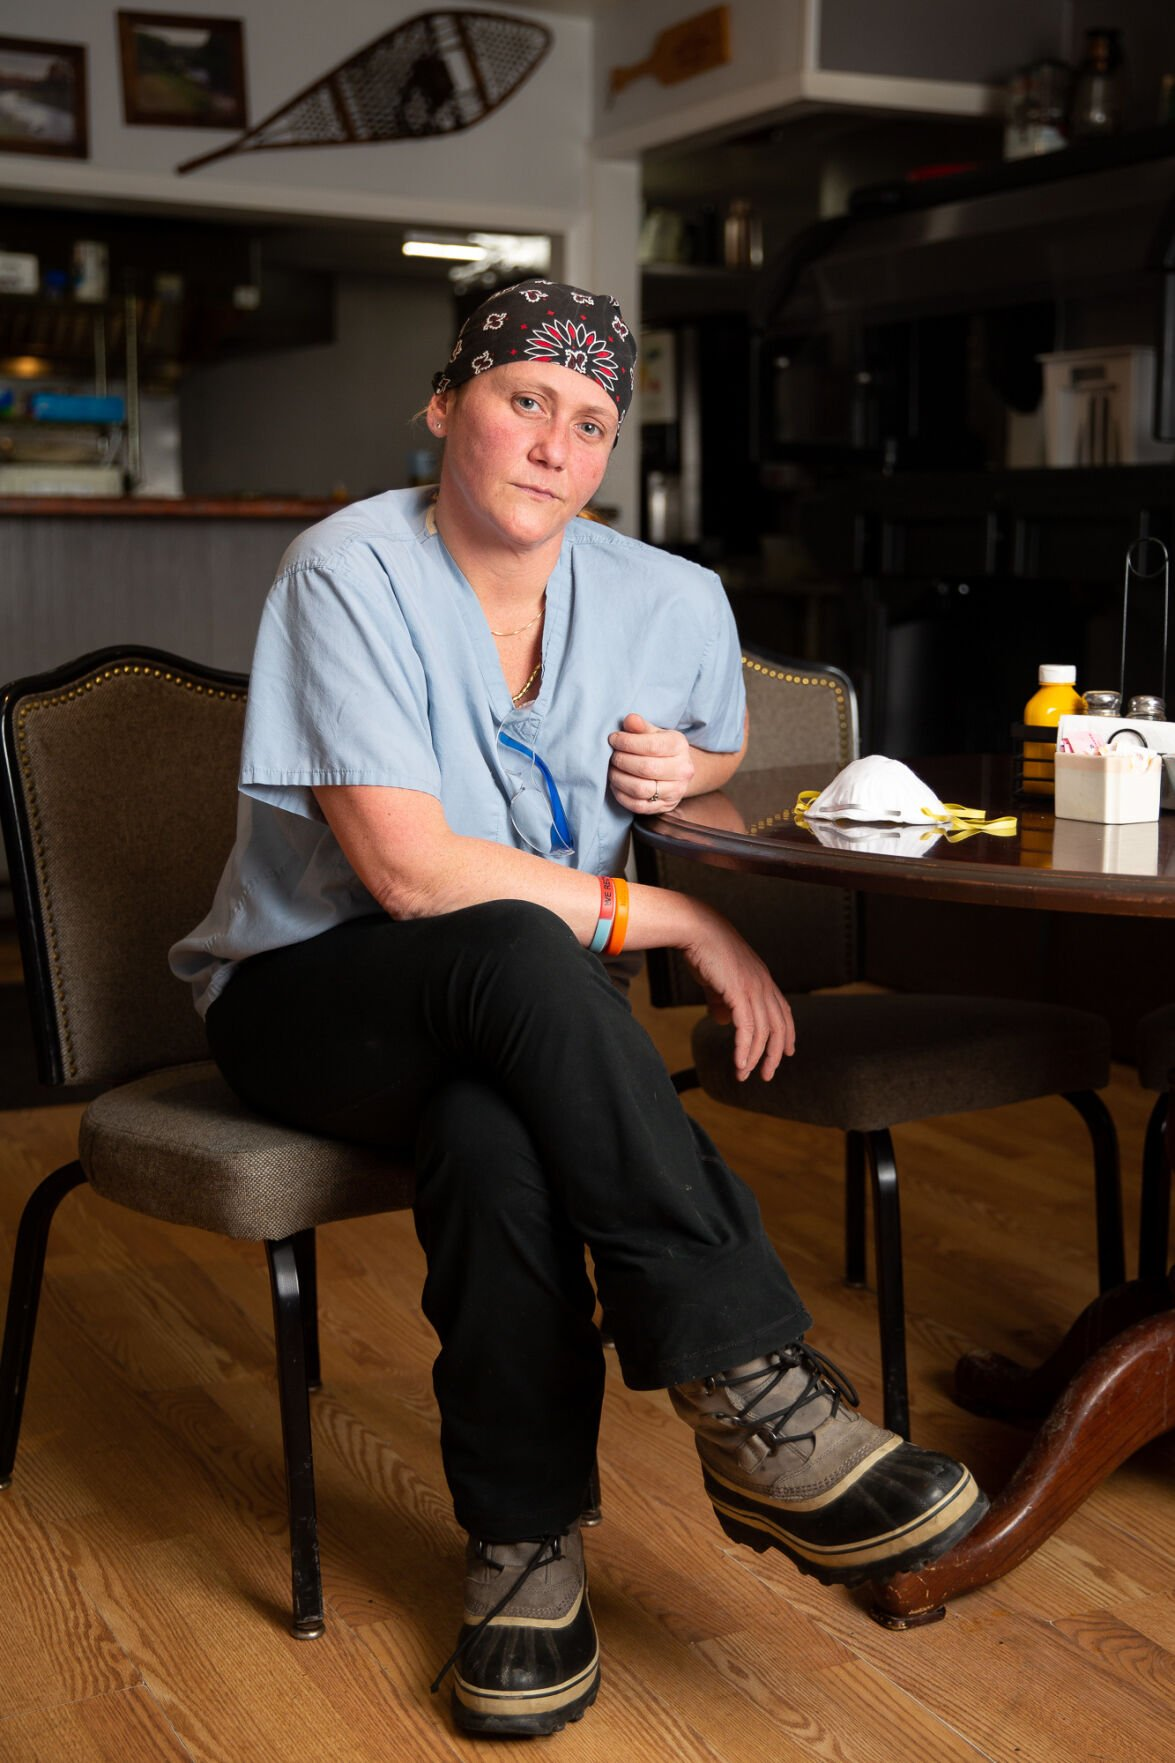 TOO BUSY FOR A DAY OFF Hit-and-run incident adds to stress for physician assistant, restaurateur